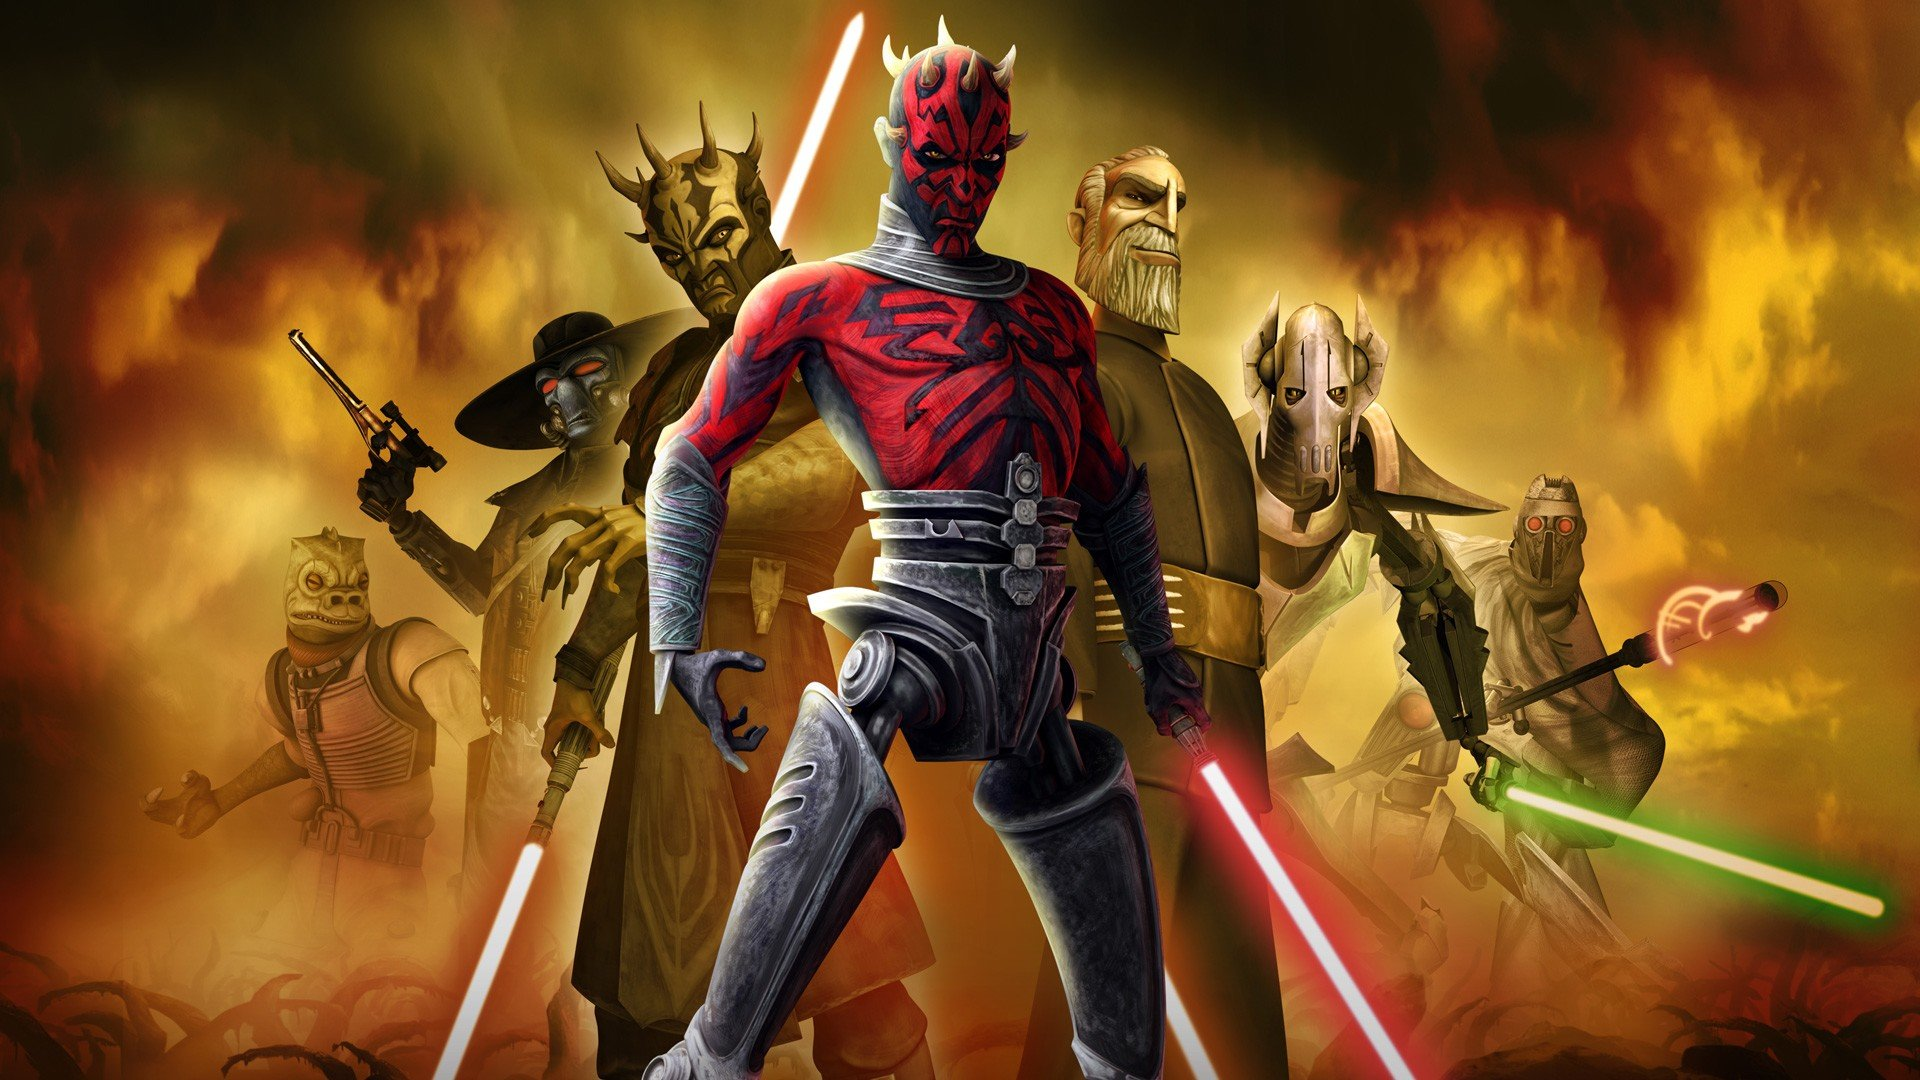 Star Wars The Clone Wars Hd Wallpaper